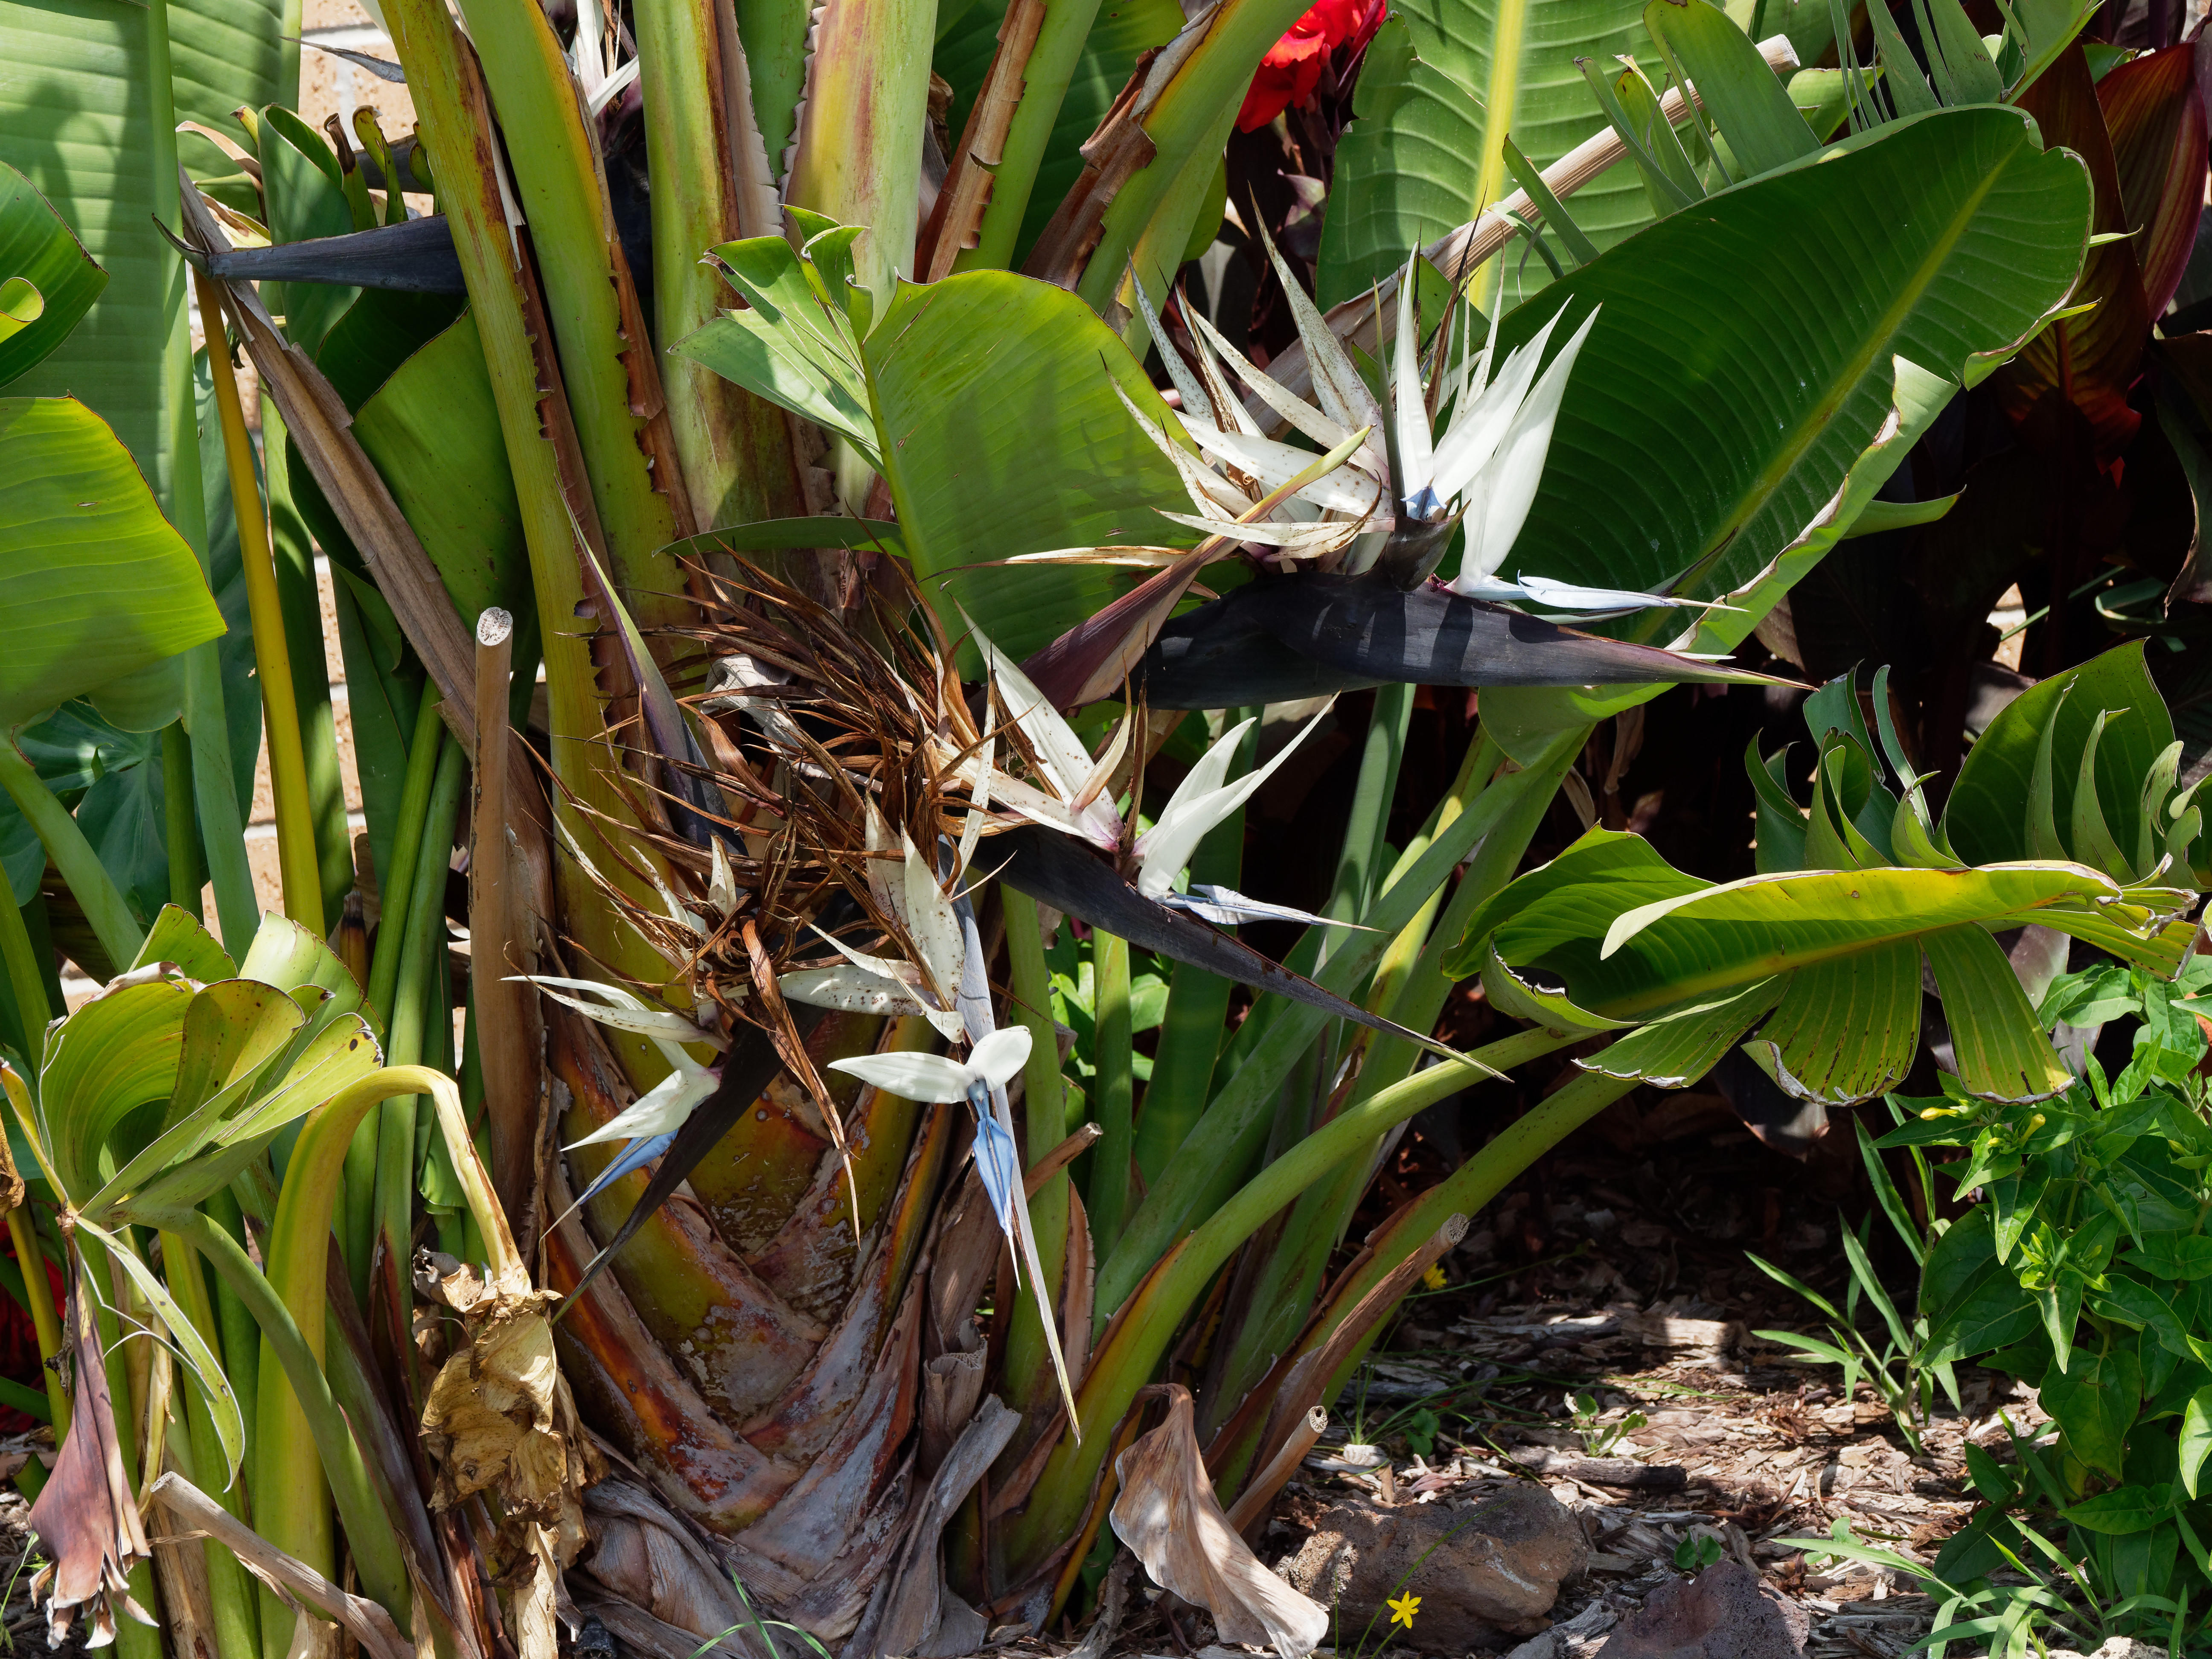 This should be Strelitzia-nicolai.jpeg.  Is it missing?